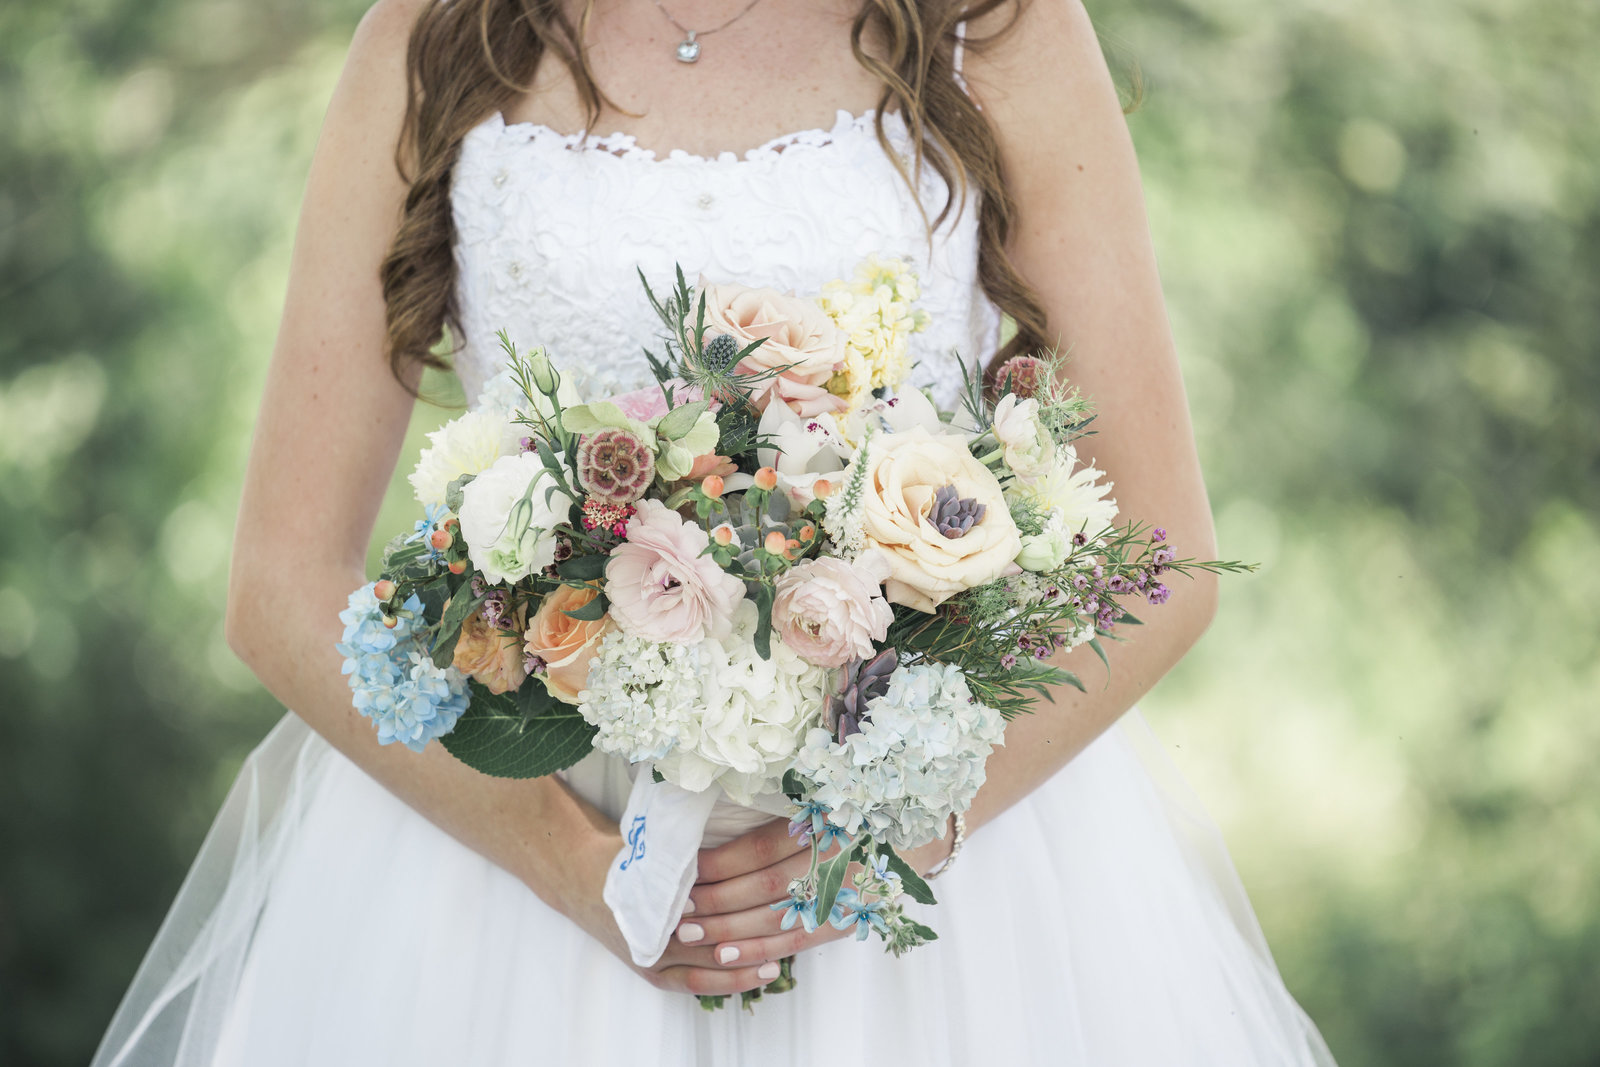 charlotte wedding photographer jamie lucido with a detail image of a beautiful messy bouquet including peonies and succulents